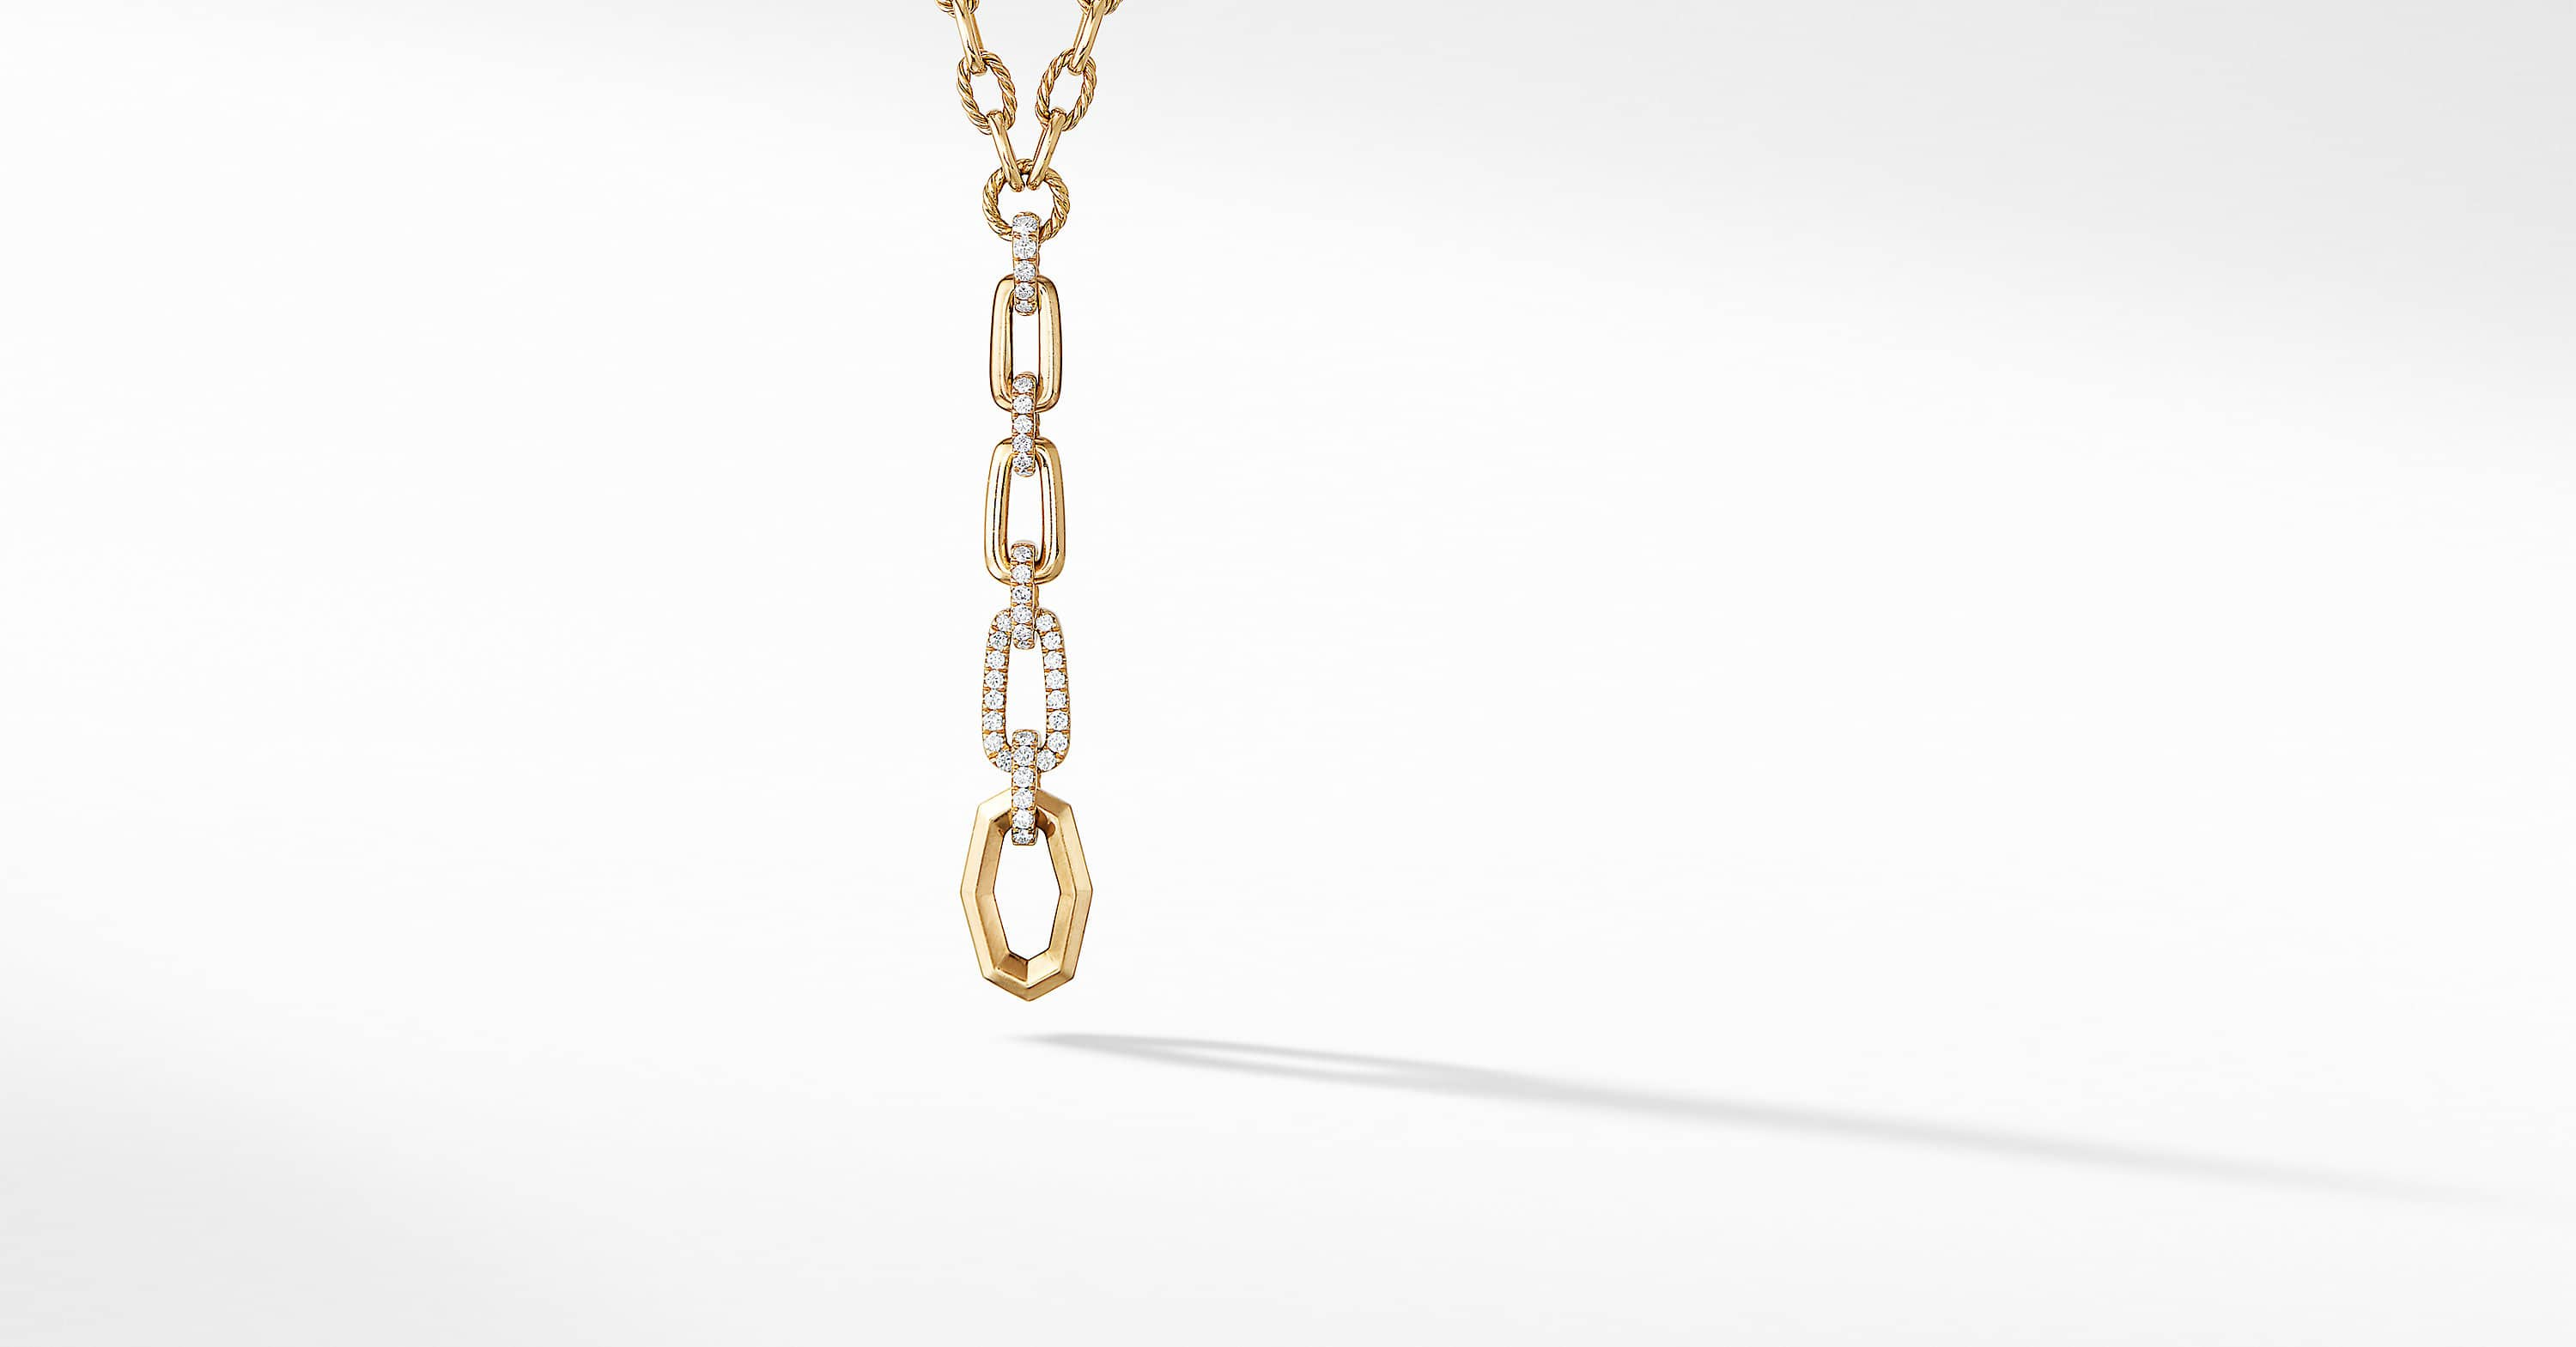 Stax Chain Link Y Necklace with Diamonds in 18K Gold